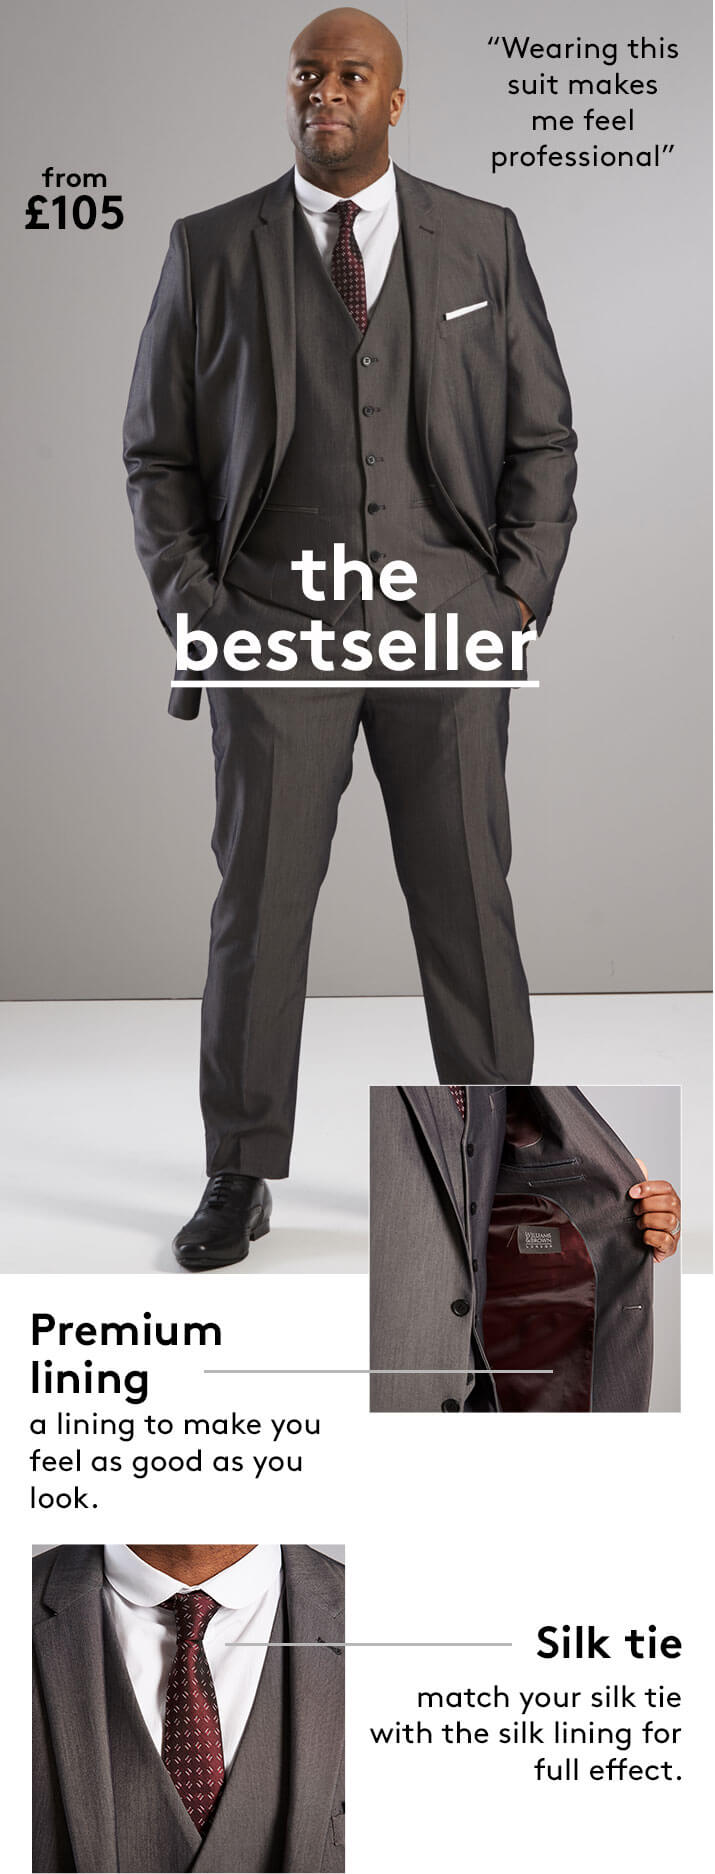 The Bestseller suit